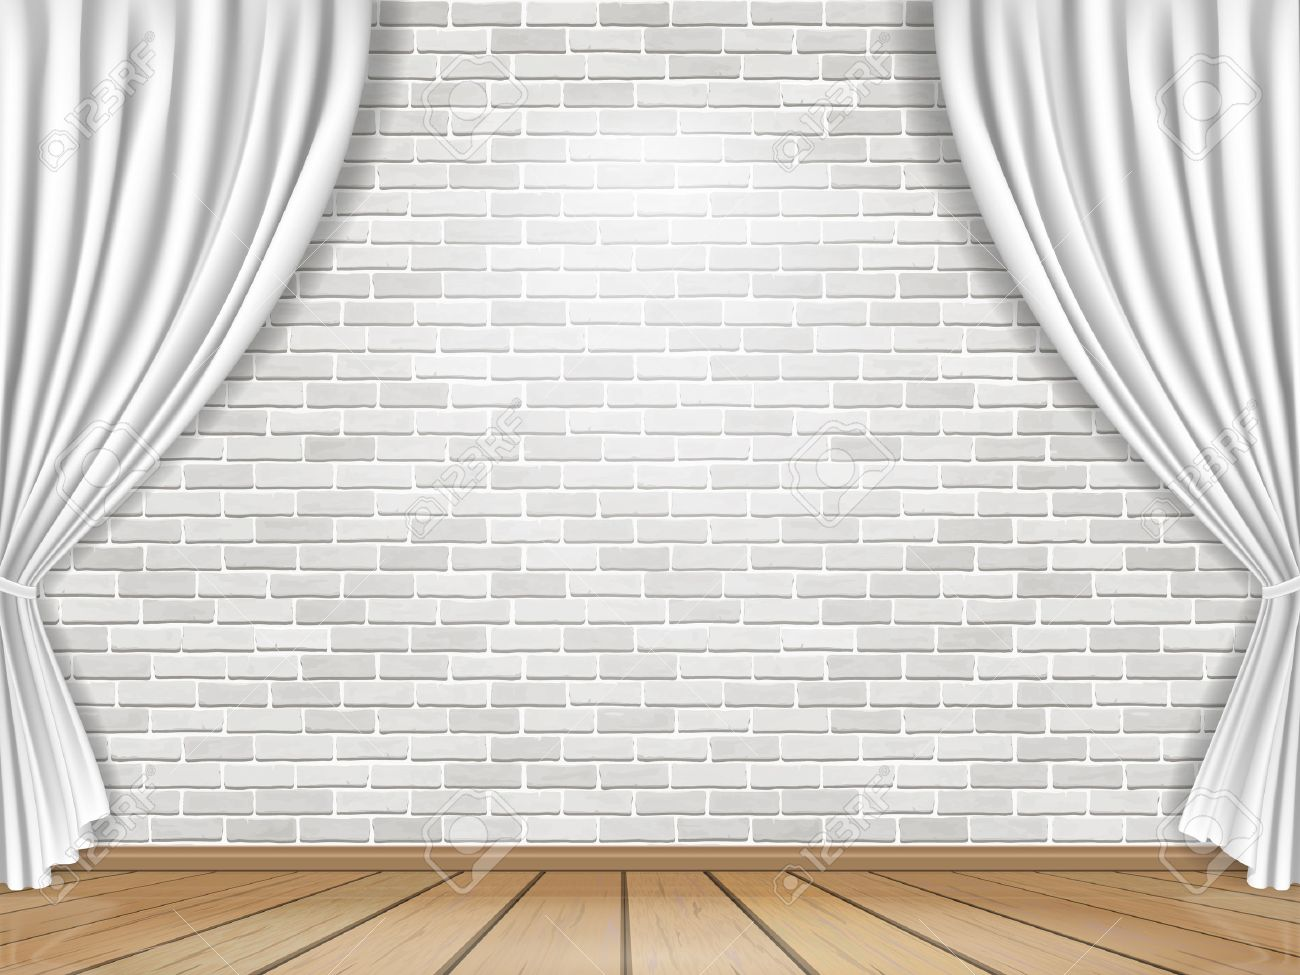 Royalty free or white curtain background drapes royalty free stock - Stage With White Curtains On Brick Wall Background Stock Vector 43340256